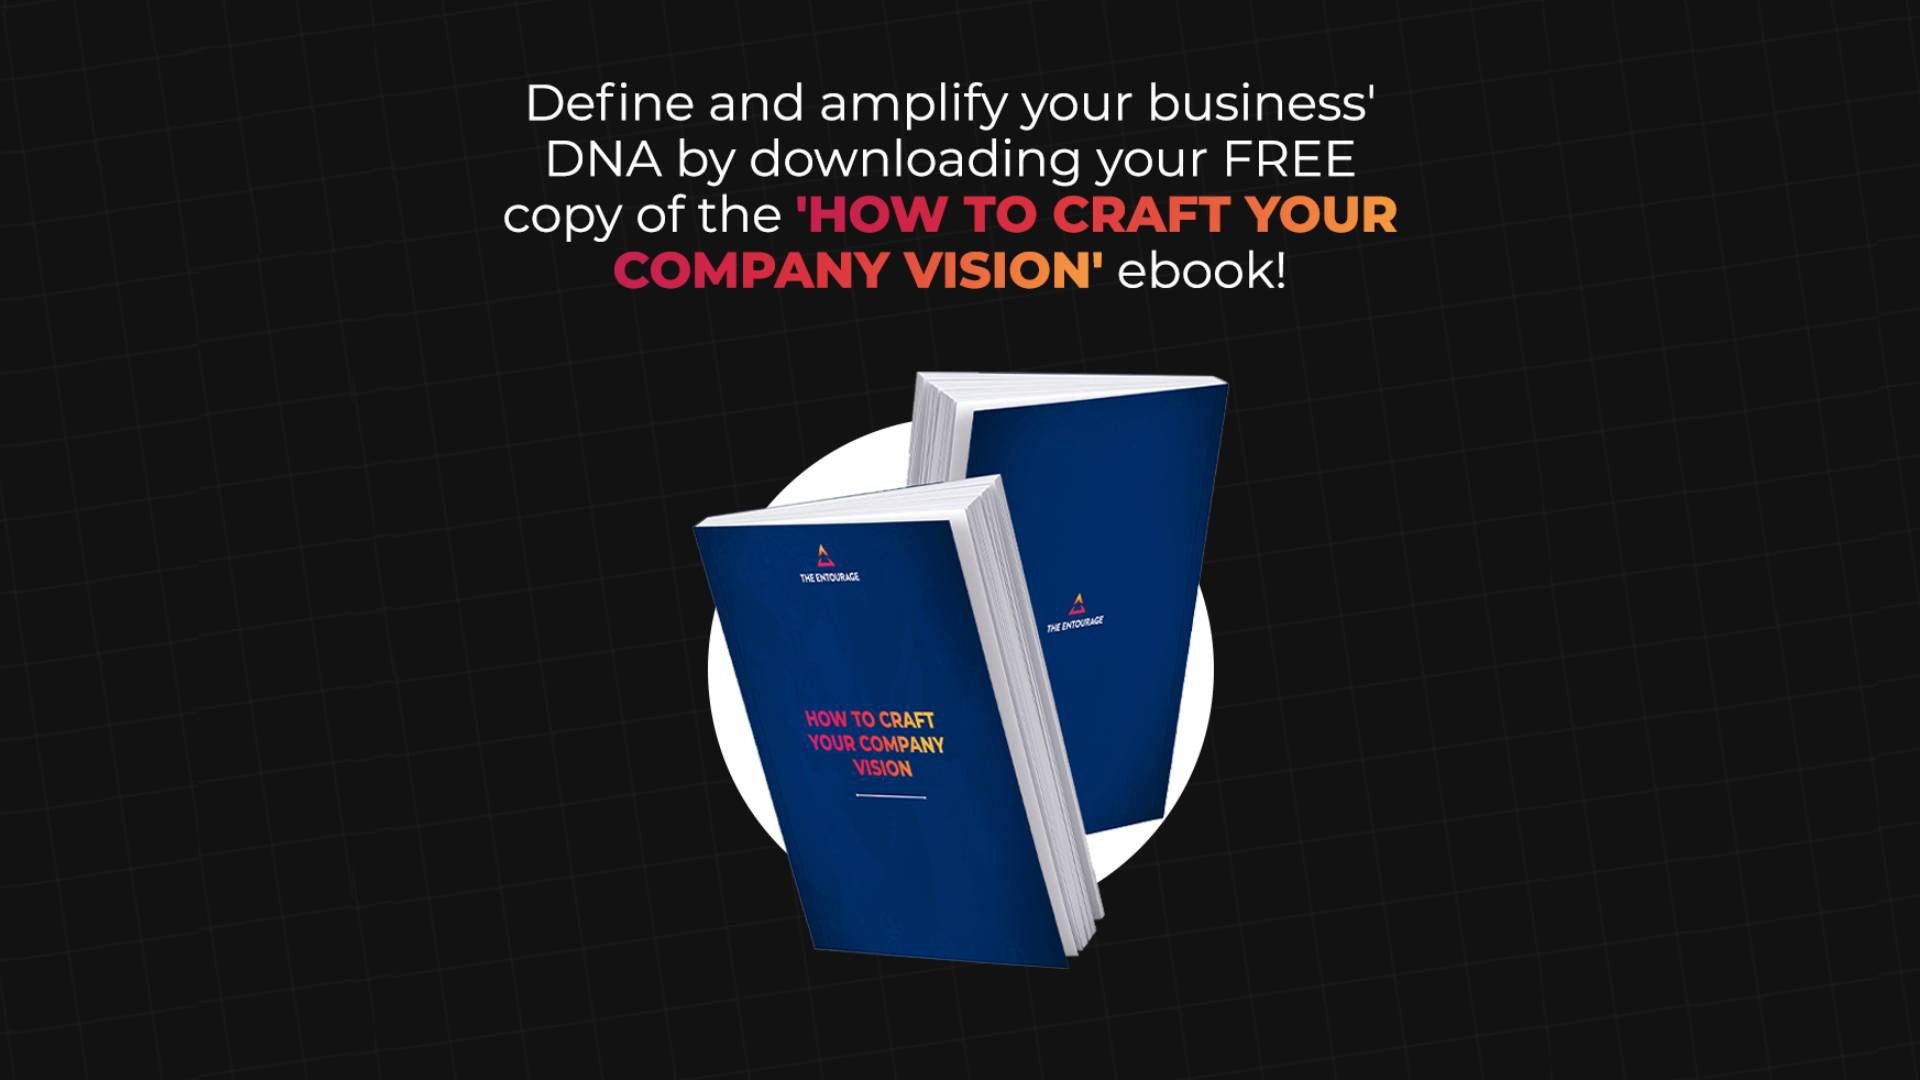 How to craft your company vision ebook podcast page CTA